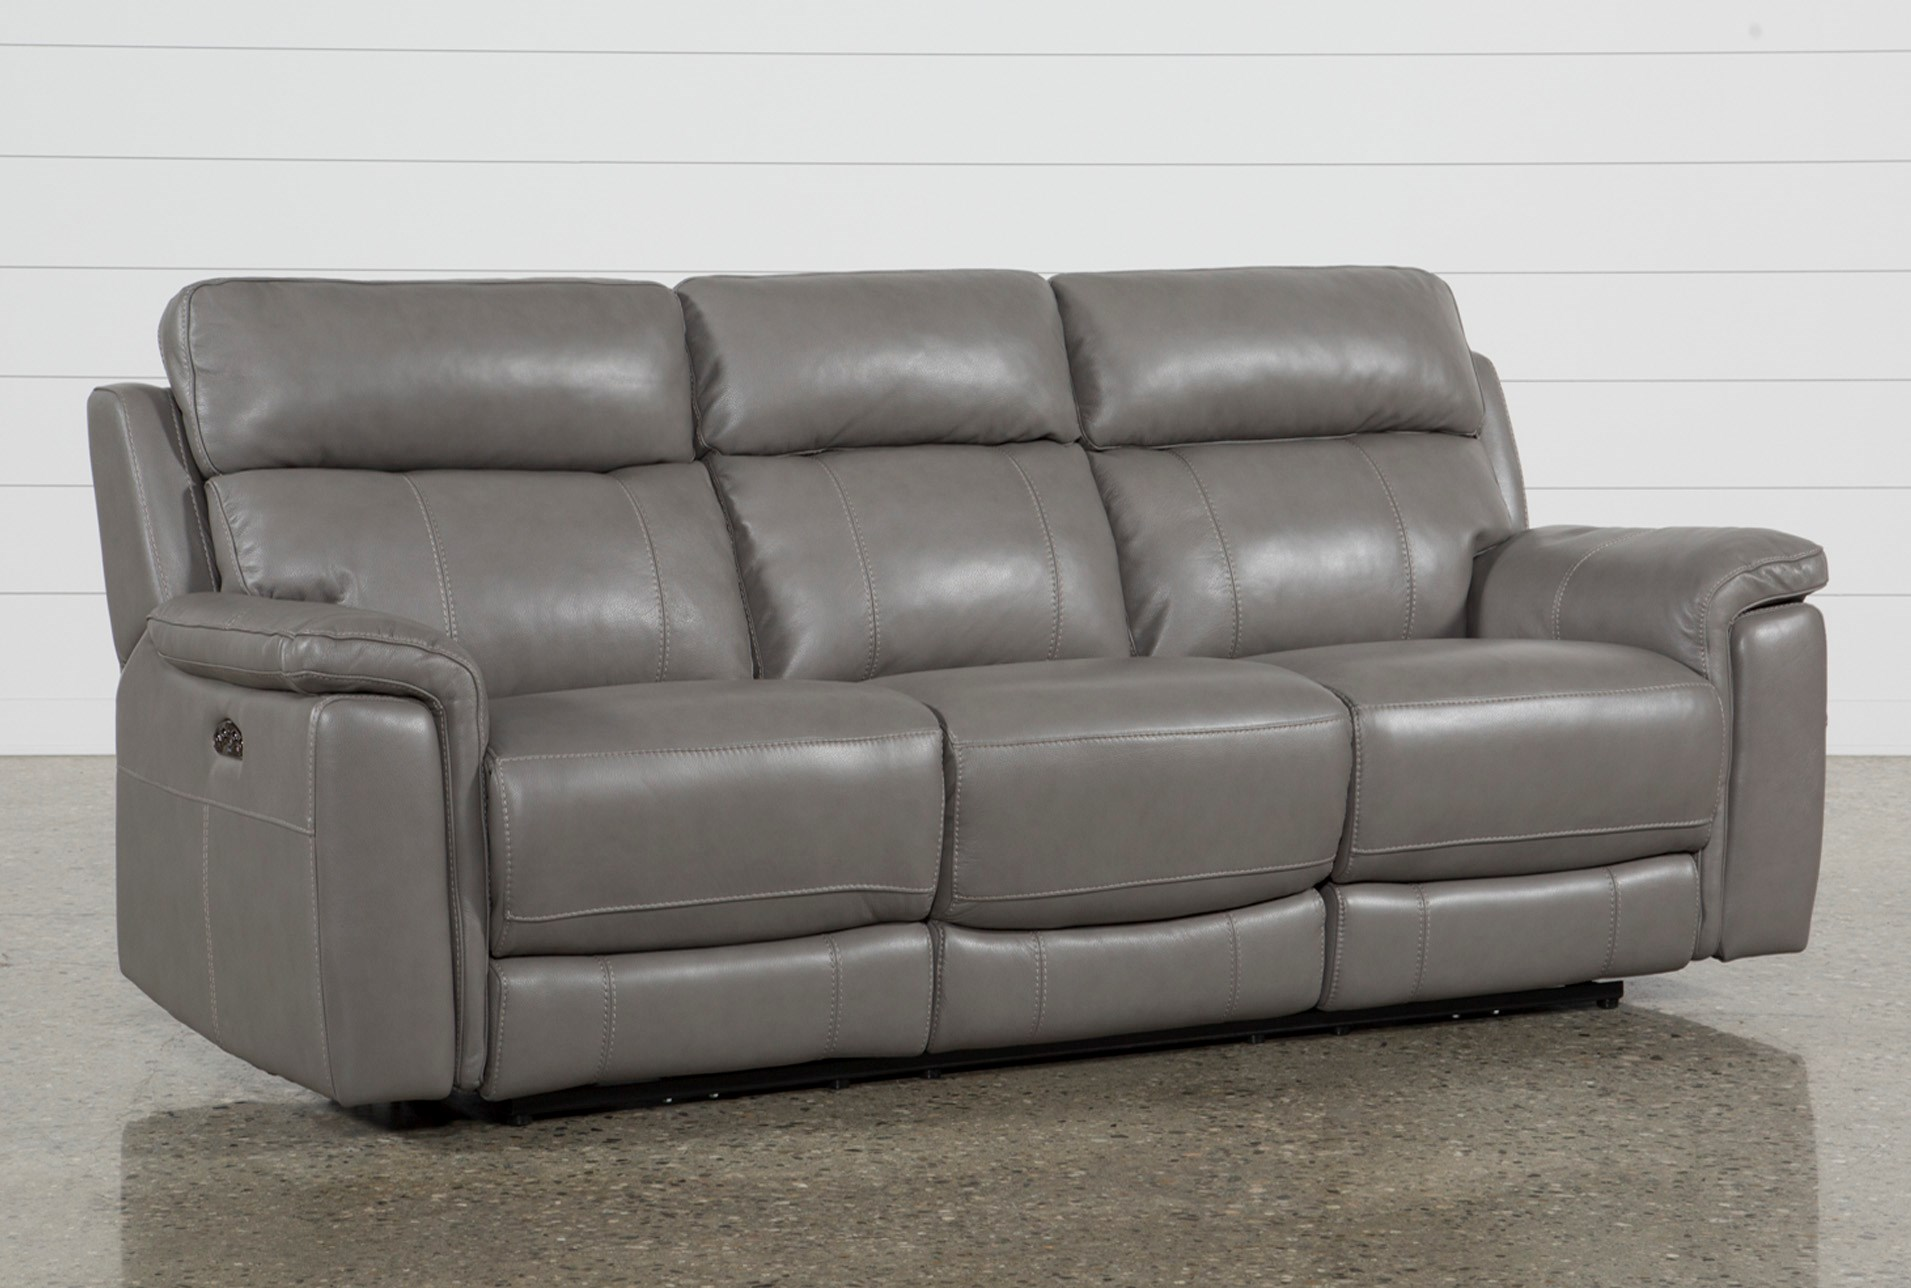 Dino Grey Leather Reclining Sofa W Headrest Usb Qty 1 Has Been Successfully Added To Your Cart